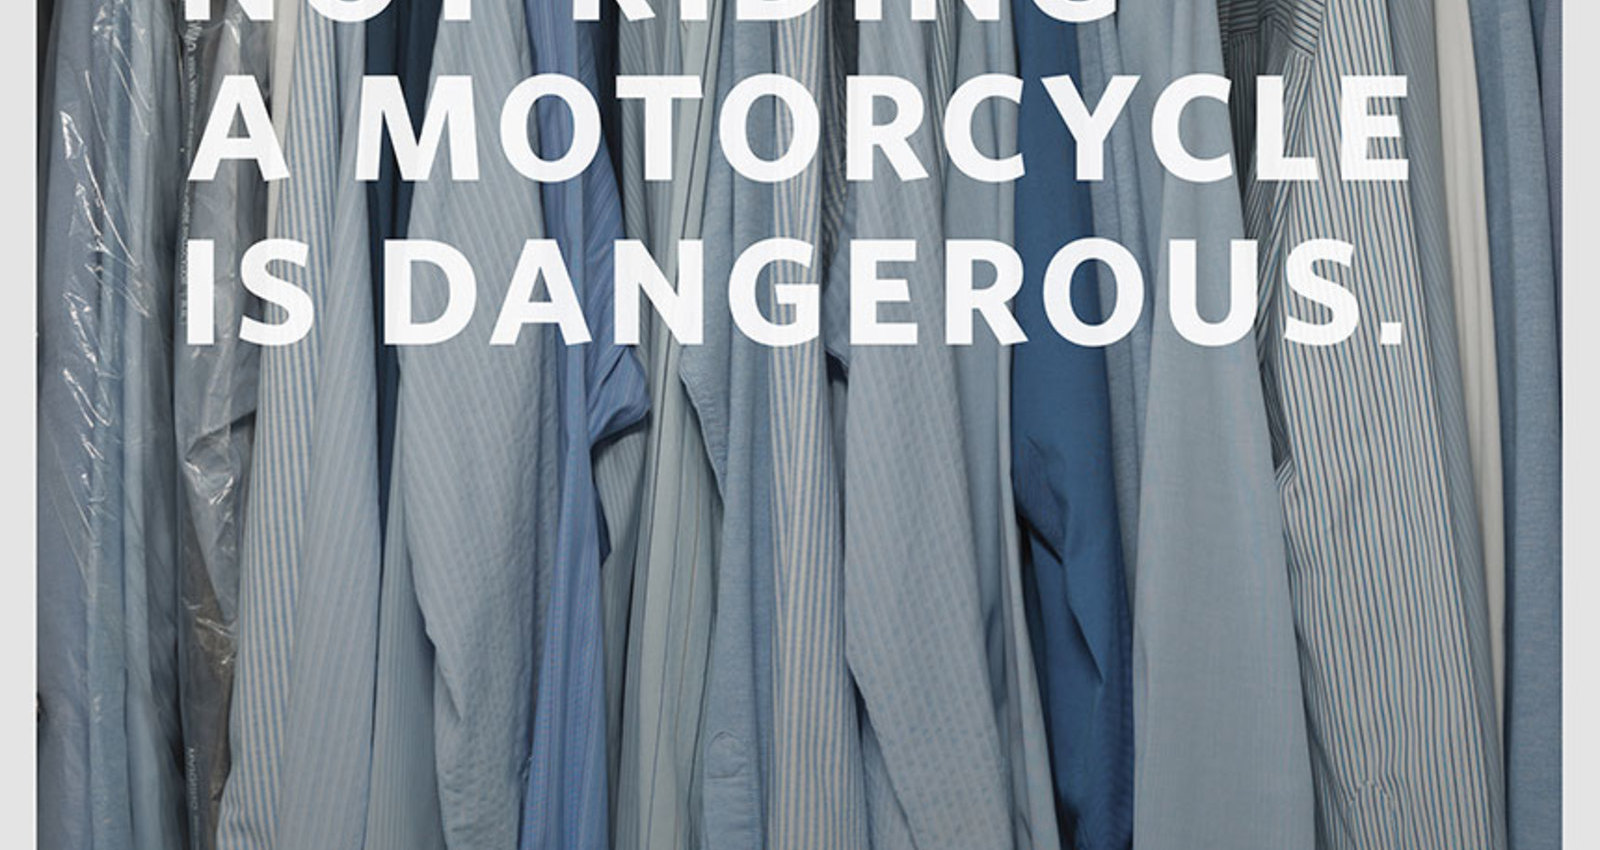 Not Riding a Motorcycle is Dangerous